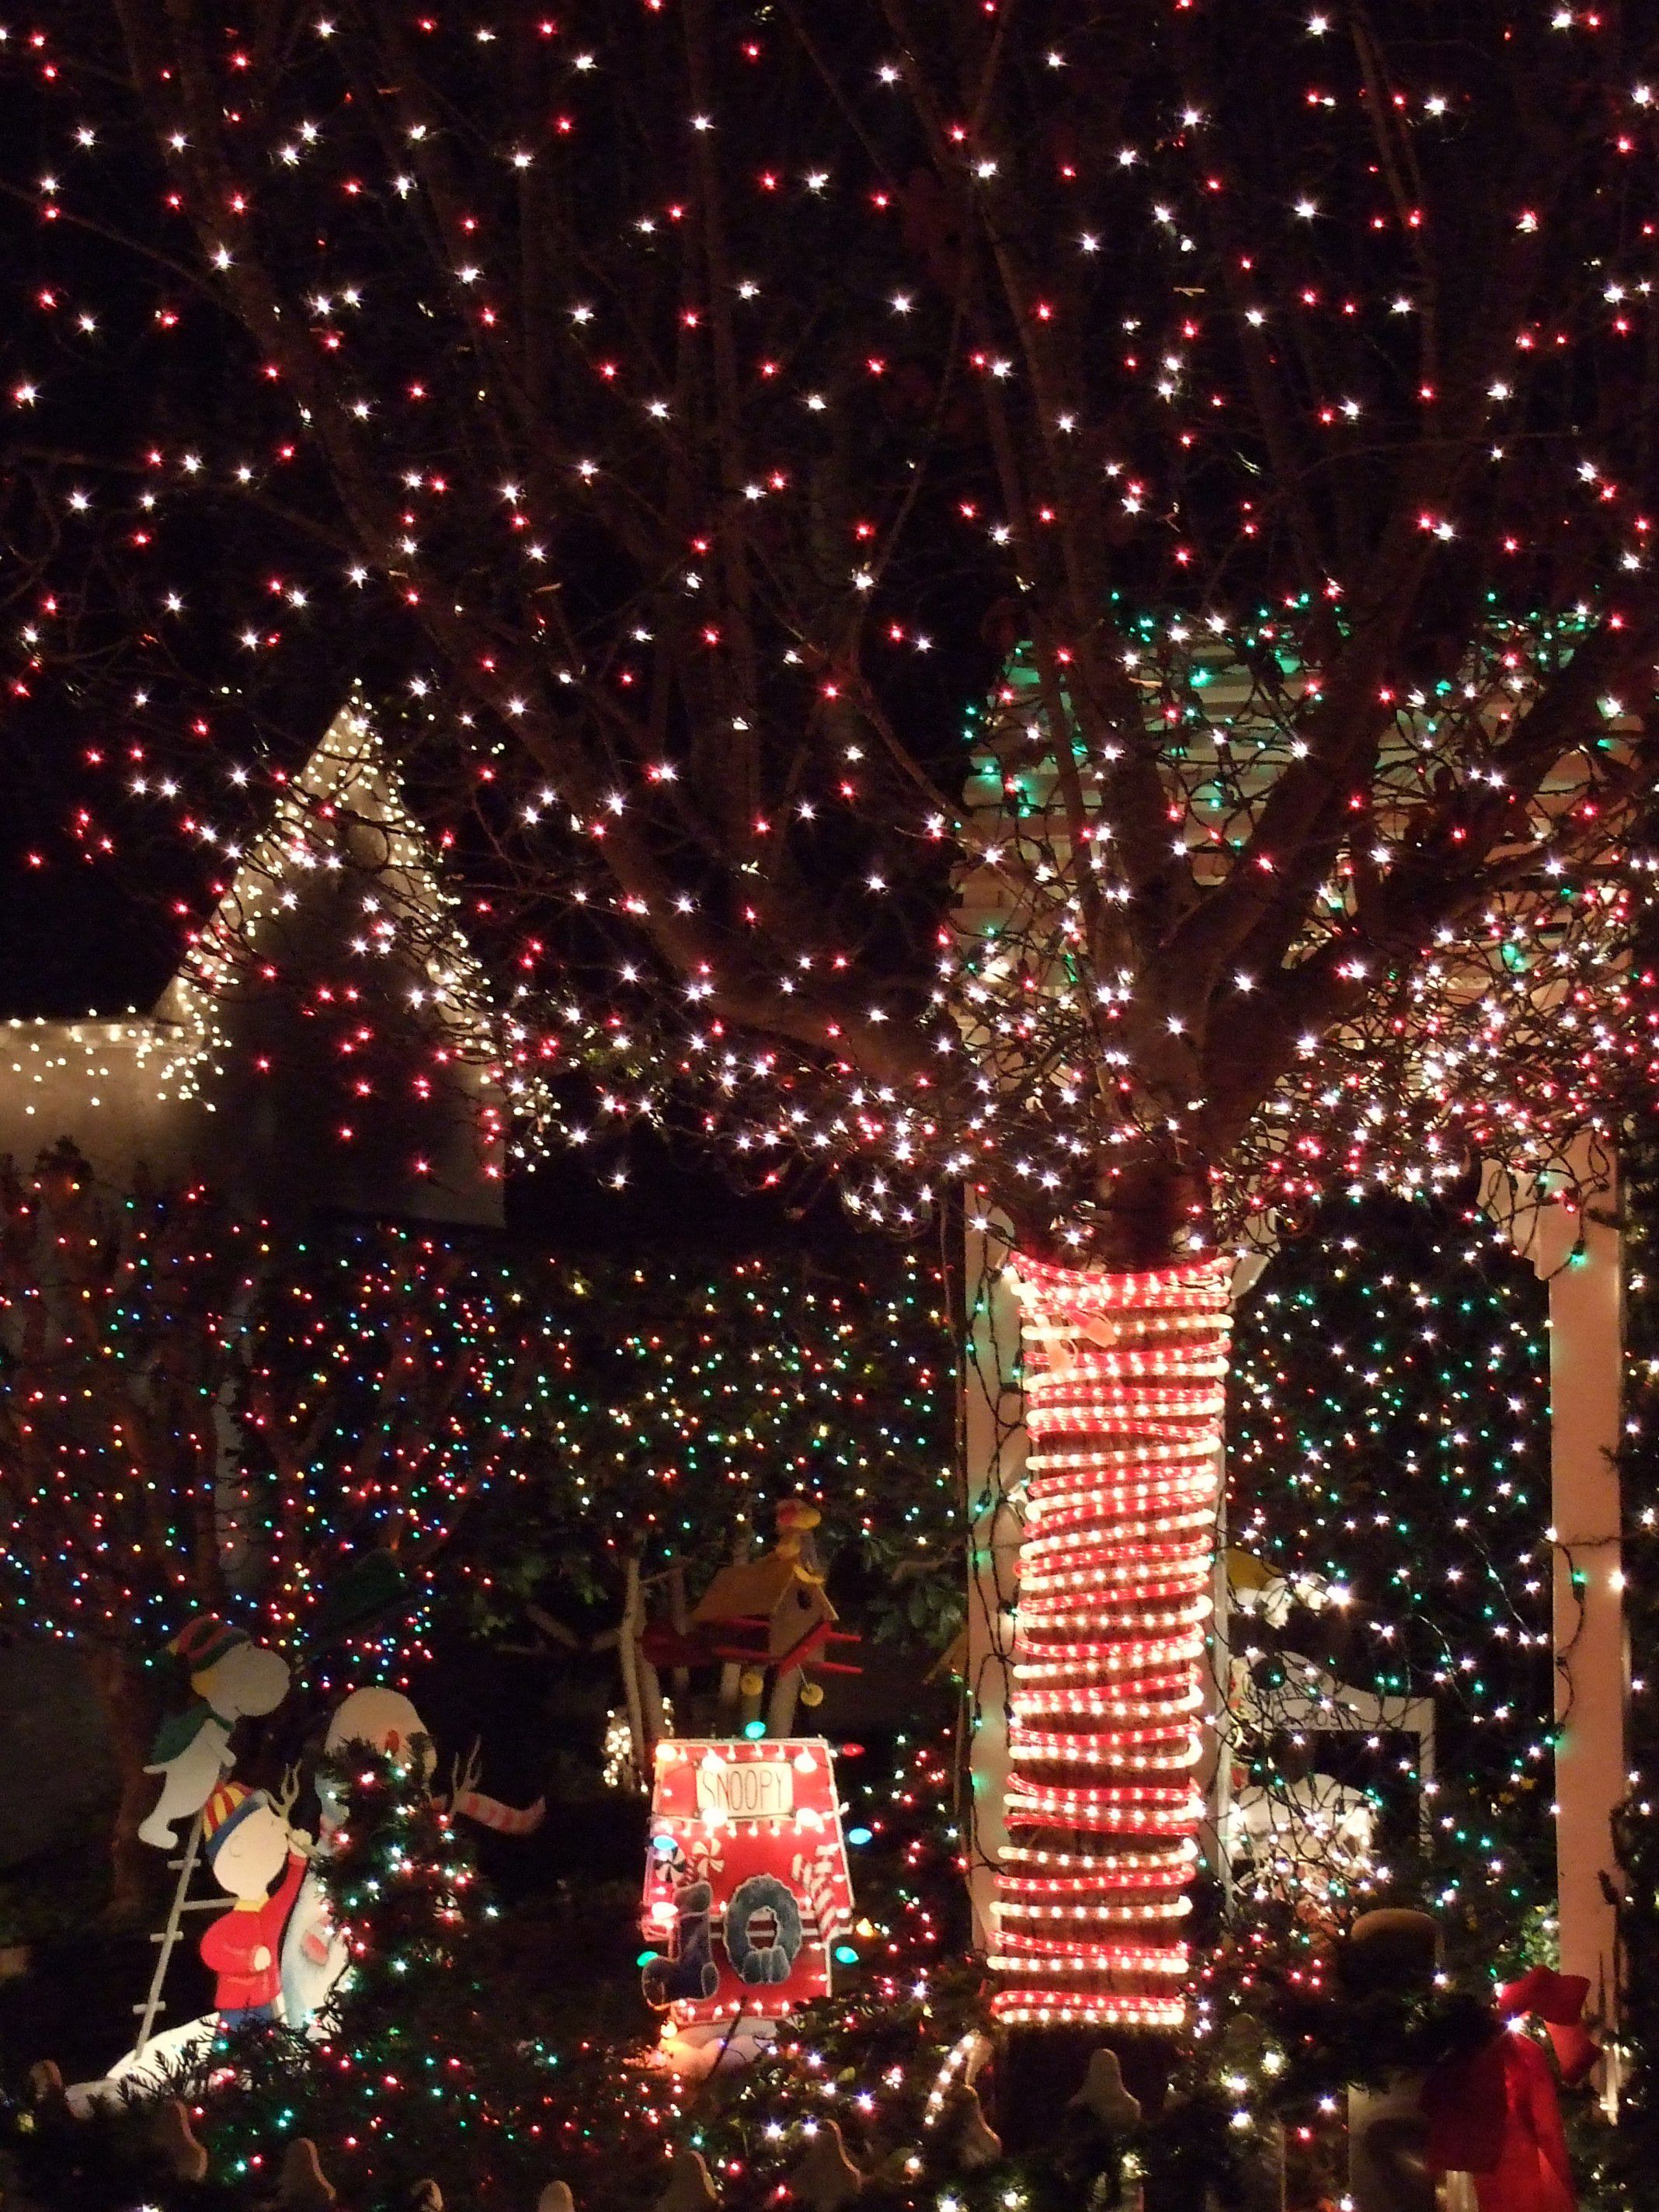 Christmas Lights Displays on Santa Rosa s Walnut Court